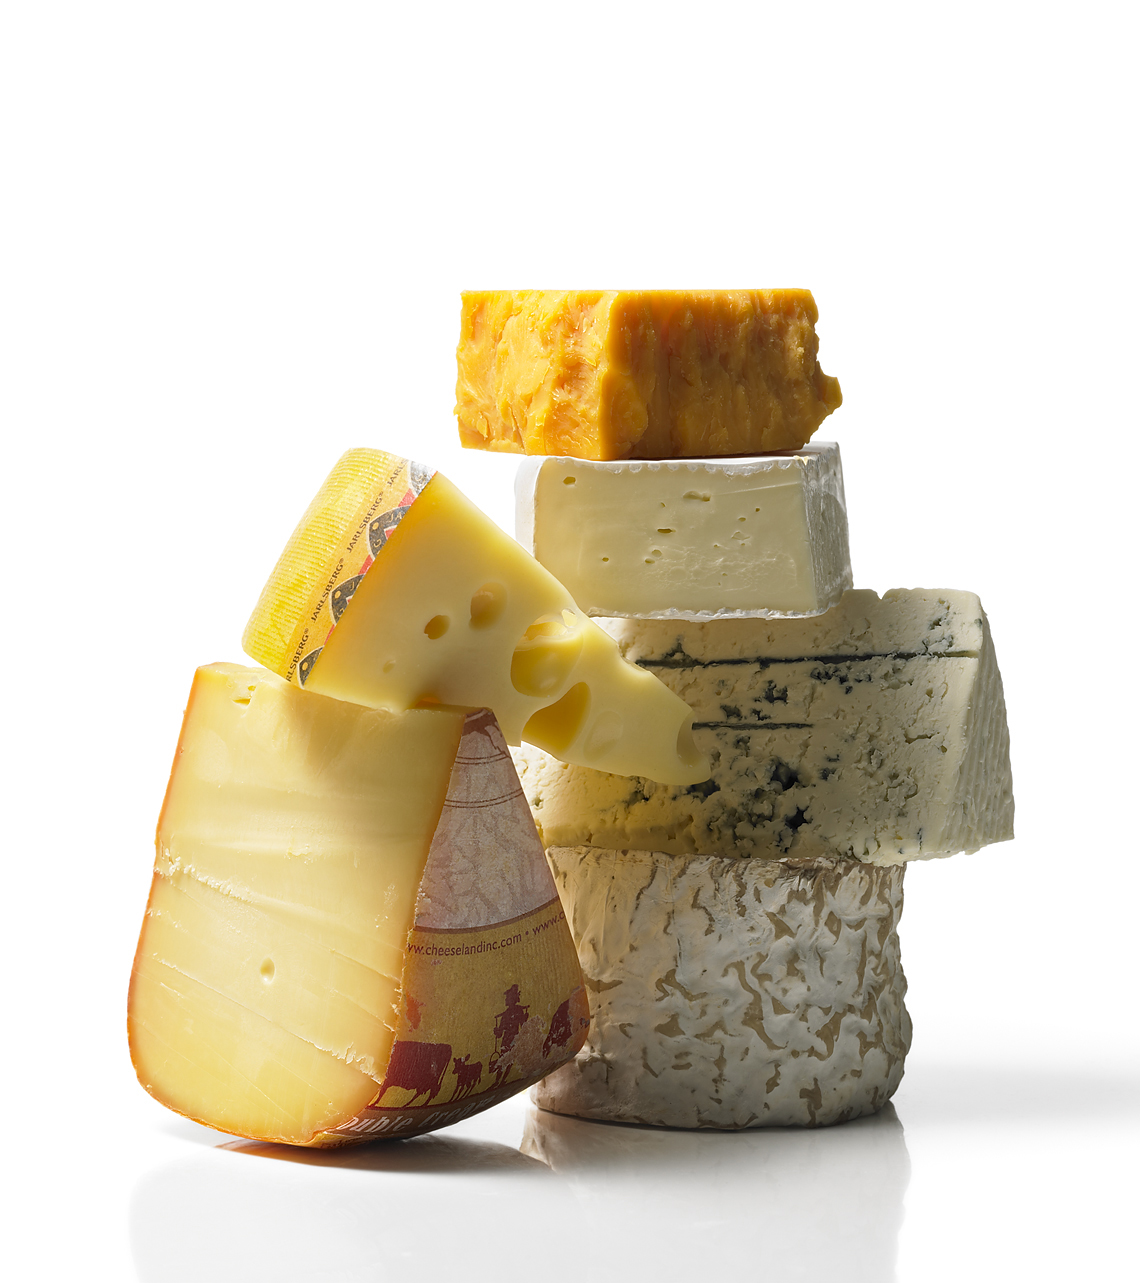 Glasshouse Assignment - Kang Kim - Food Photography - Cheeses